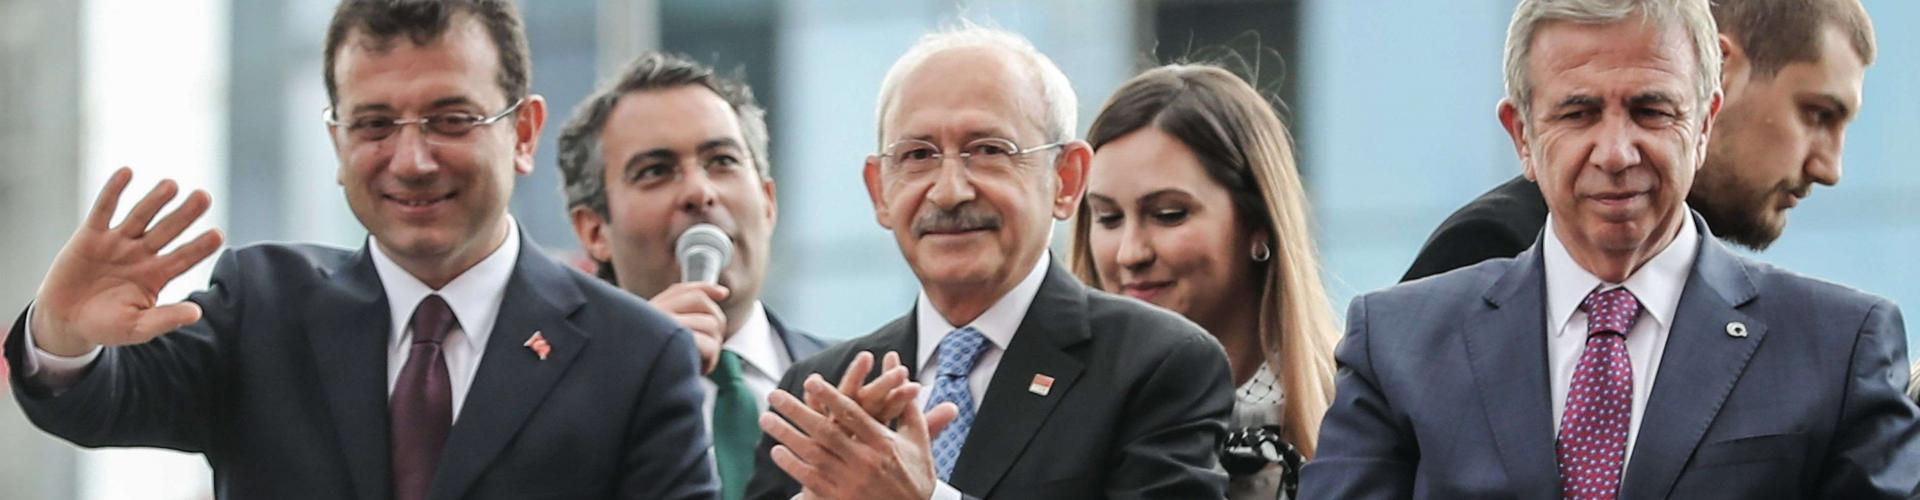 Turkey's main opposition Republican People's Party (CHP) leader Kemal Kilicdaroglu (C), Mansur Yavas (R) and Ekrem Imamoglu (L) who respectively claim mayoral elections victory in Ankara and Istanbul. Altan/AFP